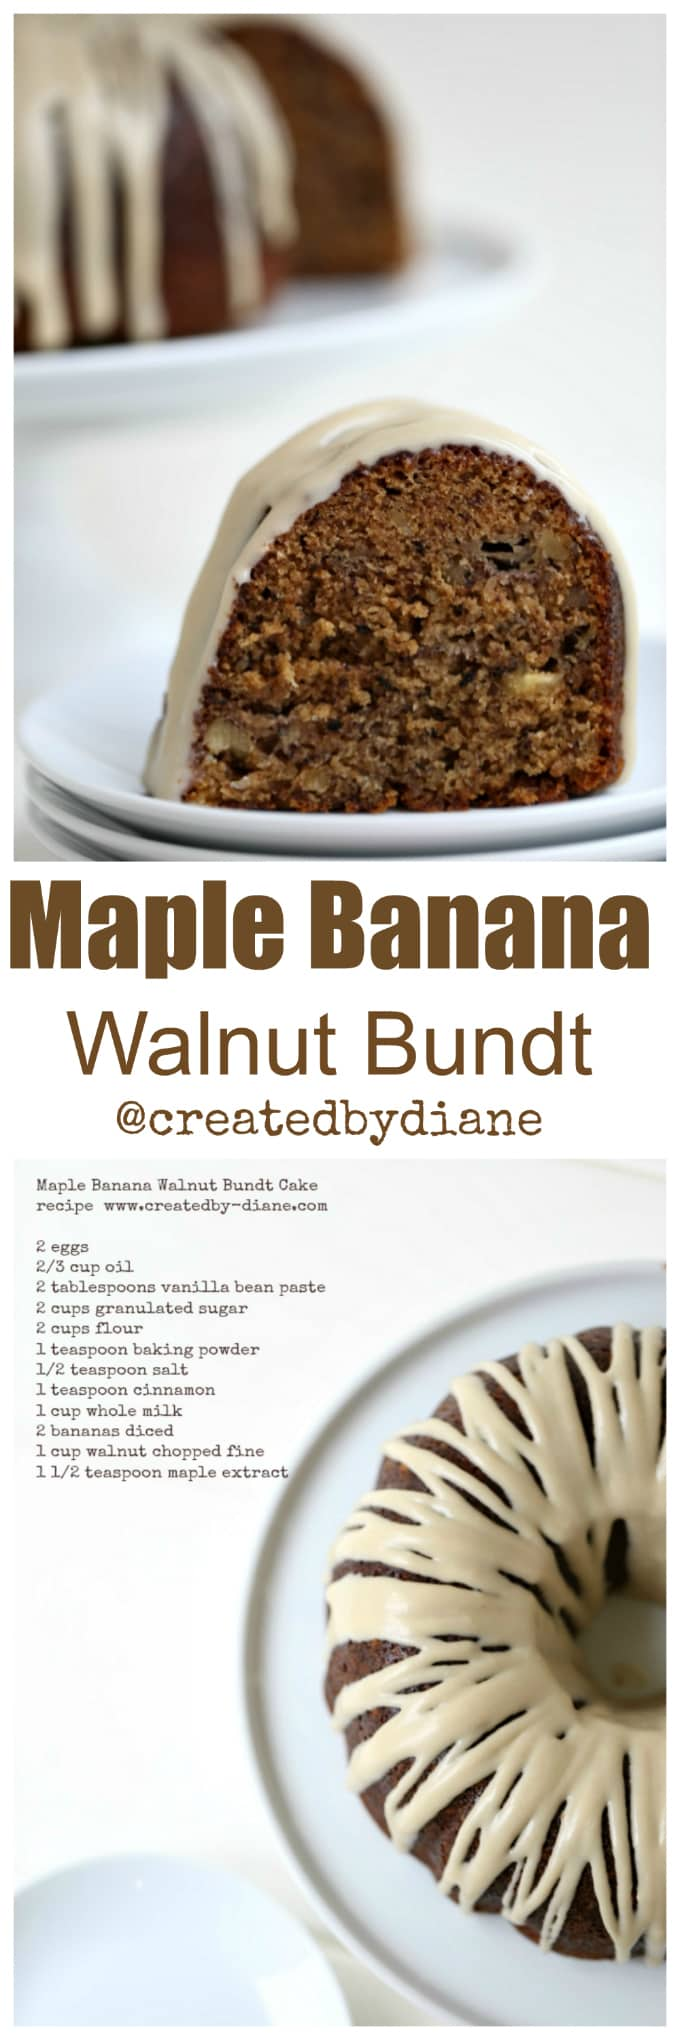 maple-banana-walnut-bundt-cake